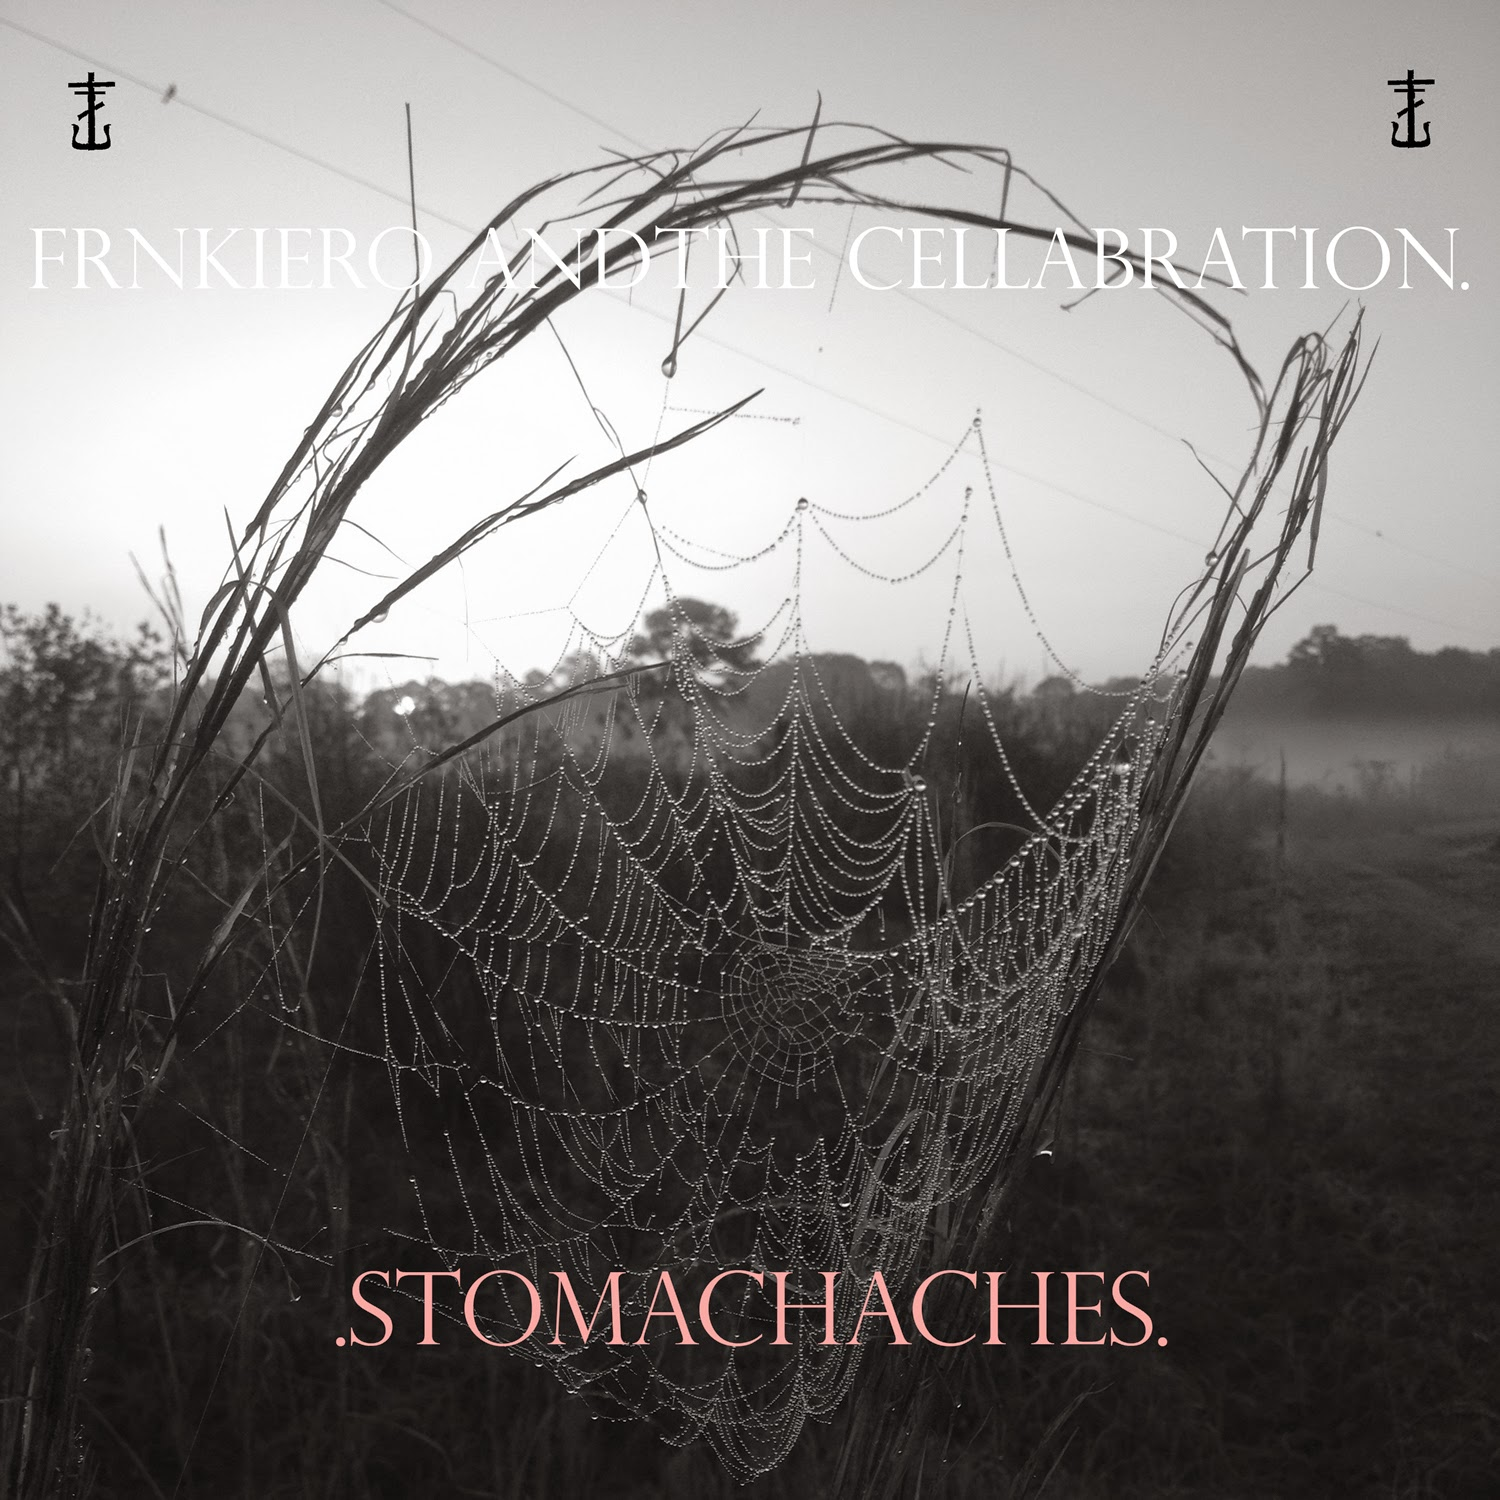 Stitches by frnkiero andthe cellabration - SonicHits